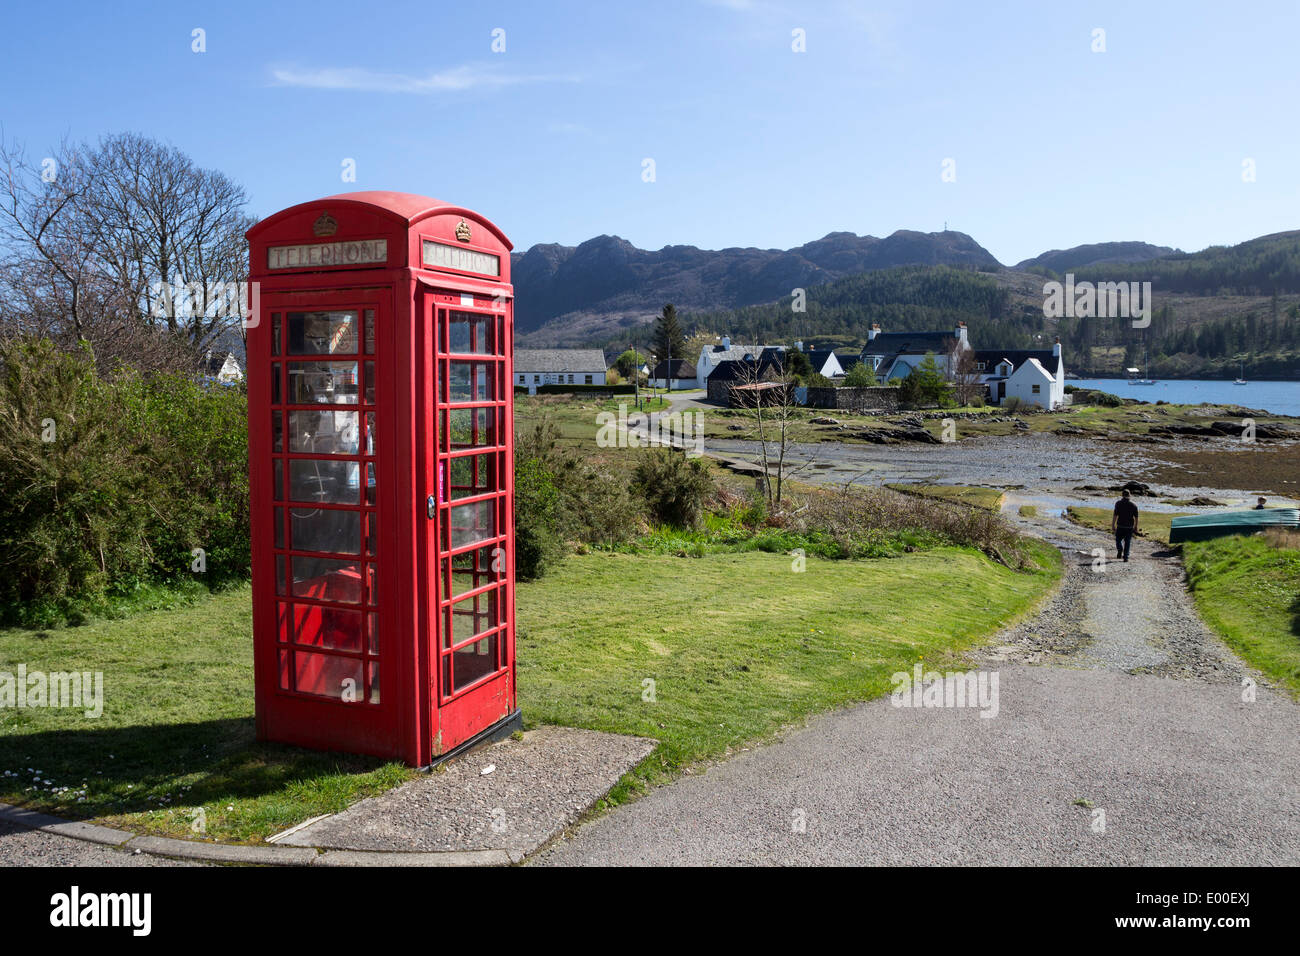 Red Telephone Box in the Village of Plockton West Coast of Scotland UK - Stock Image